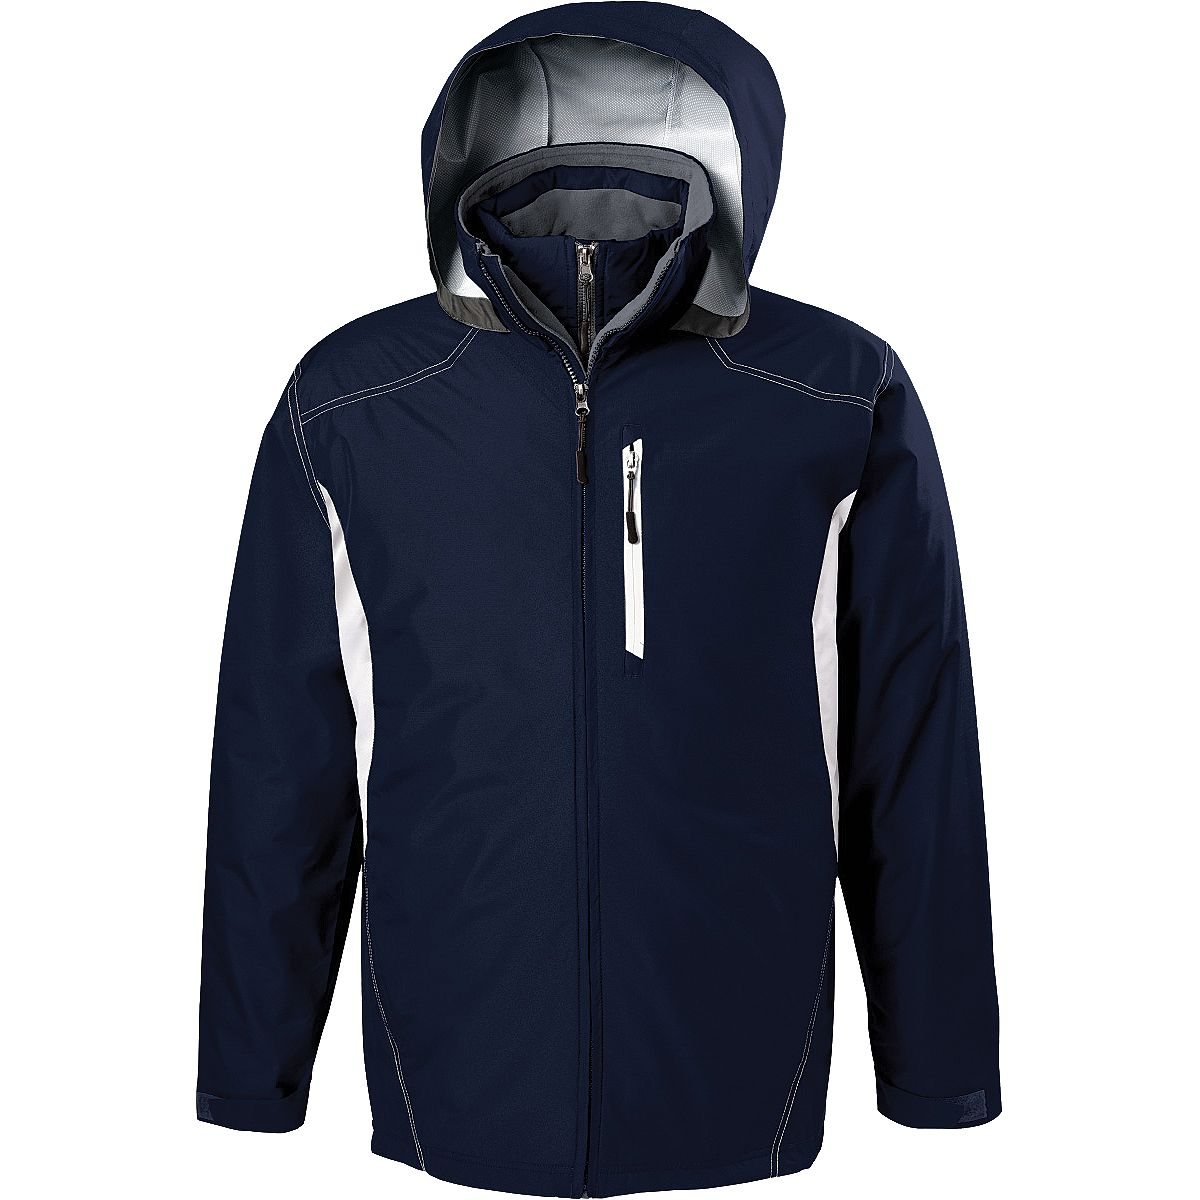 Holloway Interval Jacket Nvwhgt 3Xl - image 1 of 1